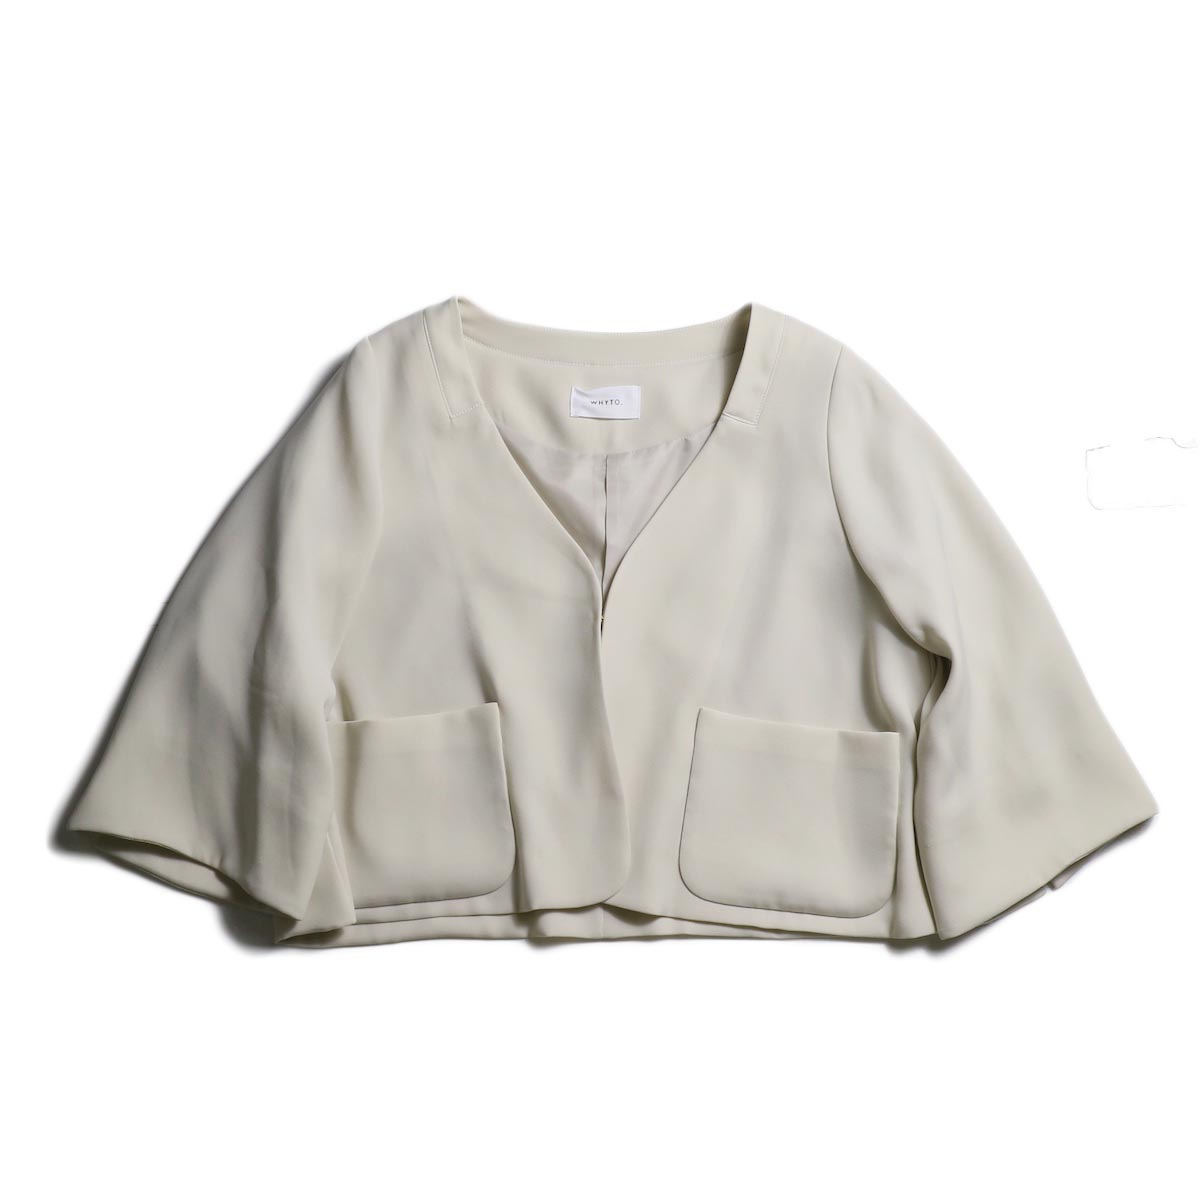 WHYTO. / Double Cloth Satin Short Jacket (Lt.Beige)